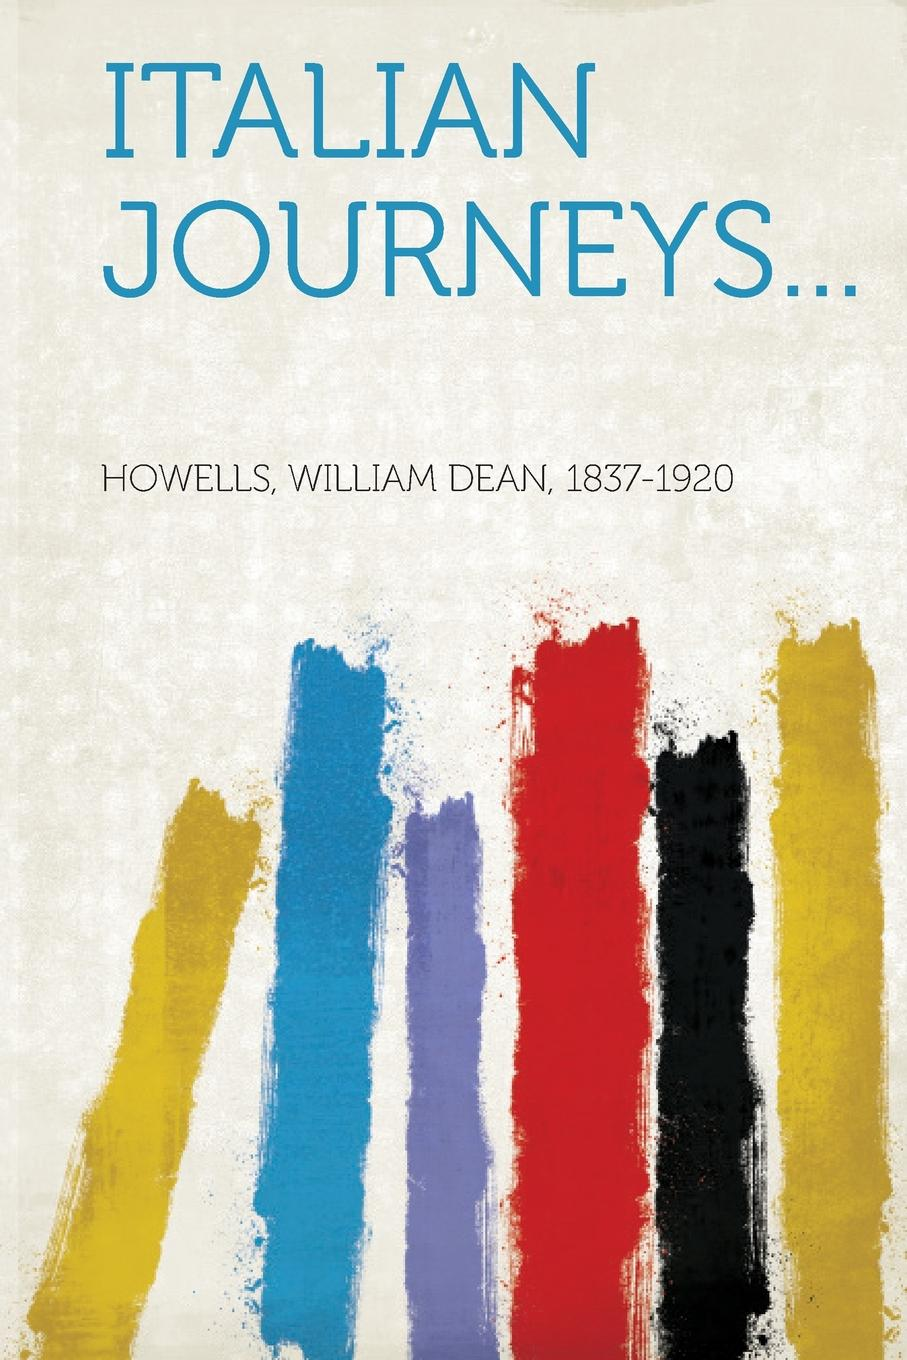 William Dean Howells Italian Journeys...